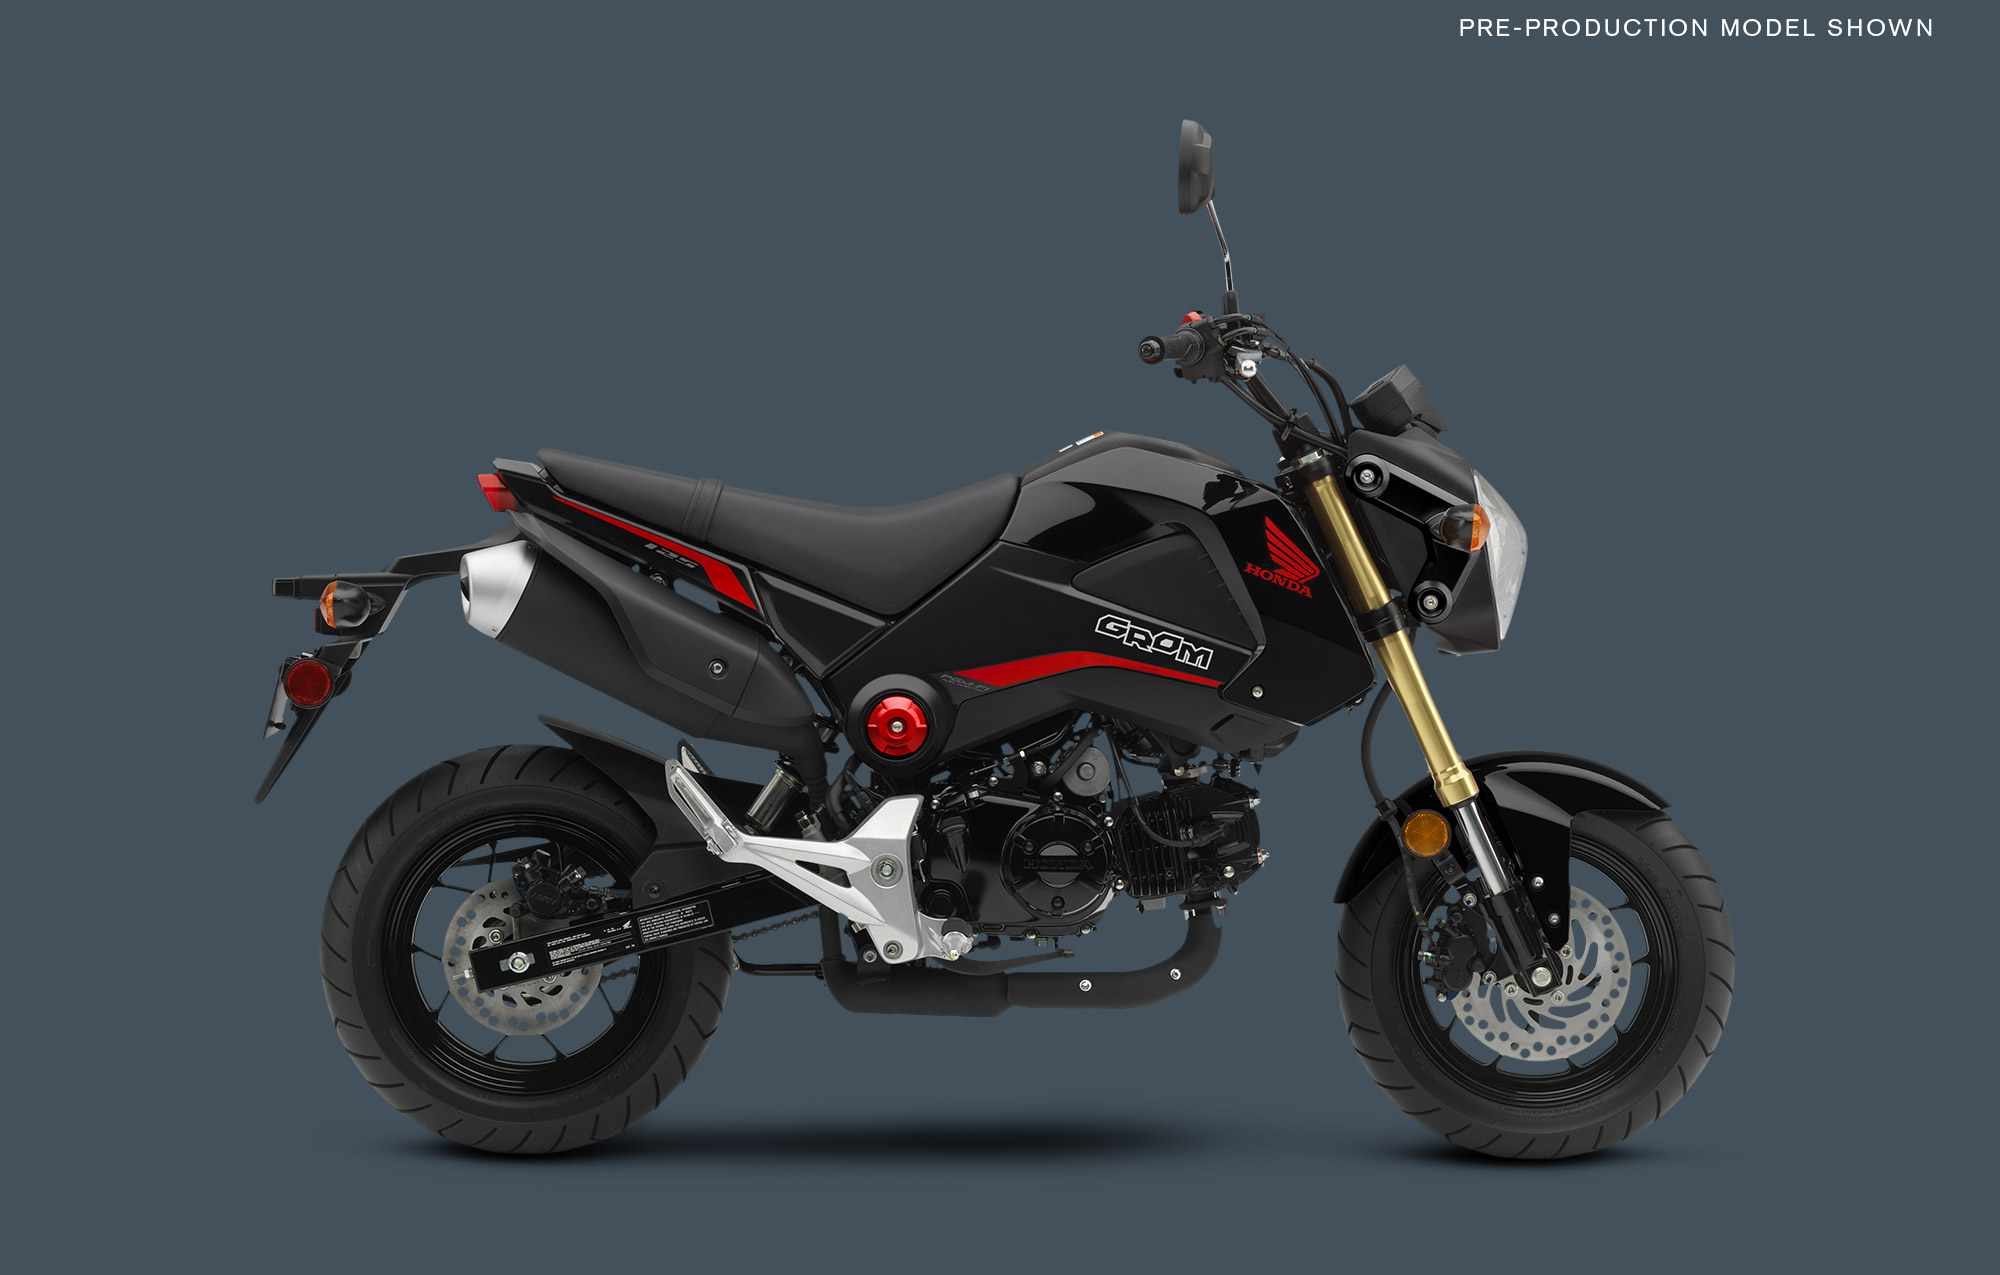 2015 Honda Grom >> Honda Grom Returns For 2015 With New Colors » Motorcycle.com News